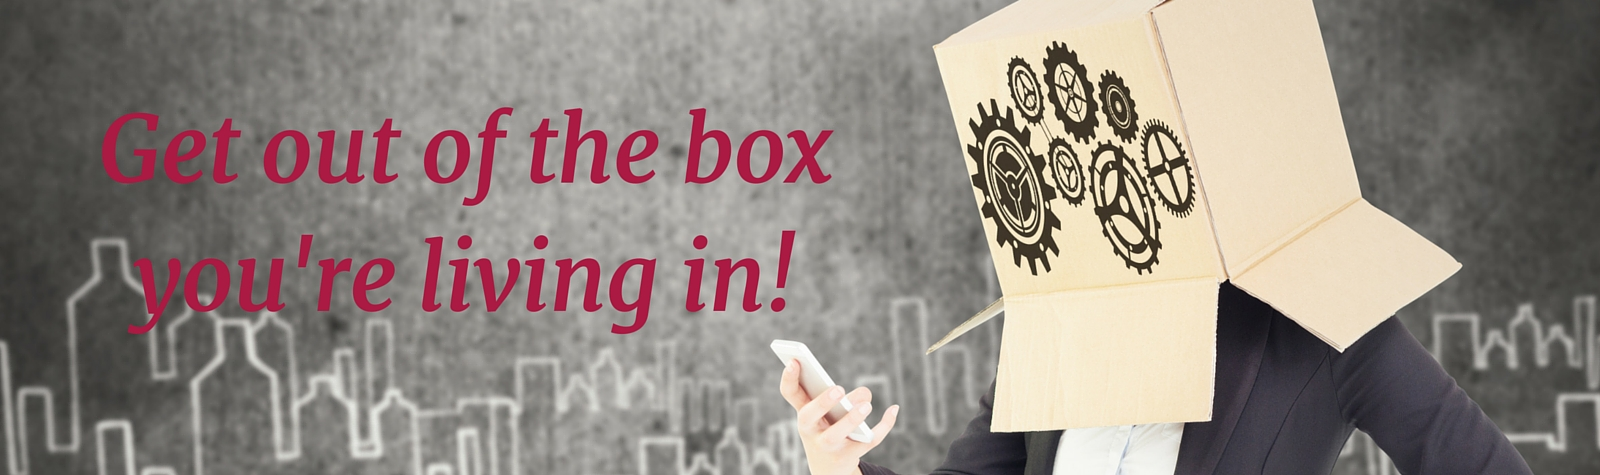 Get out of the box you're living in with Professional Co-Active Coach Beth McKay